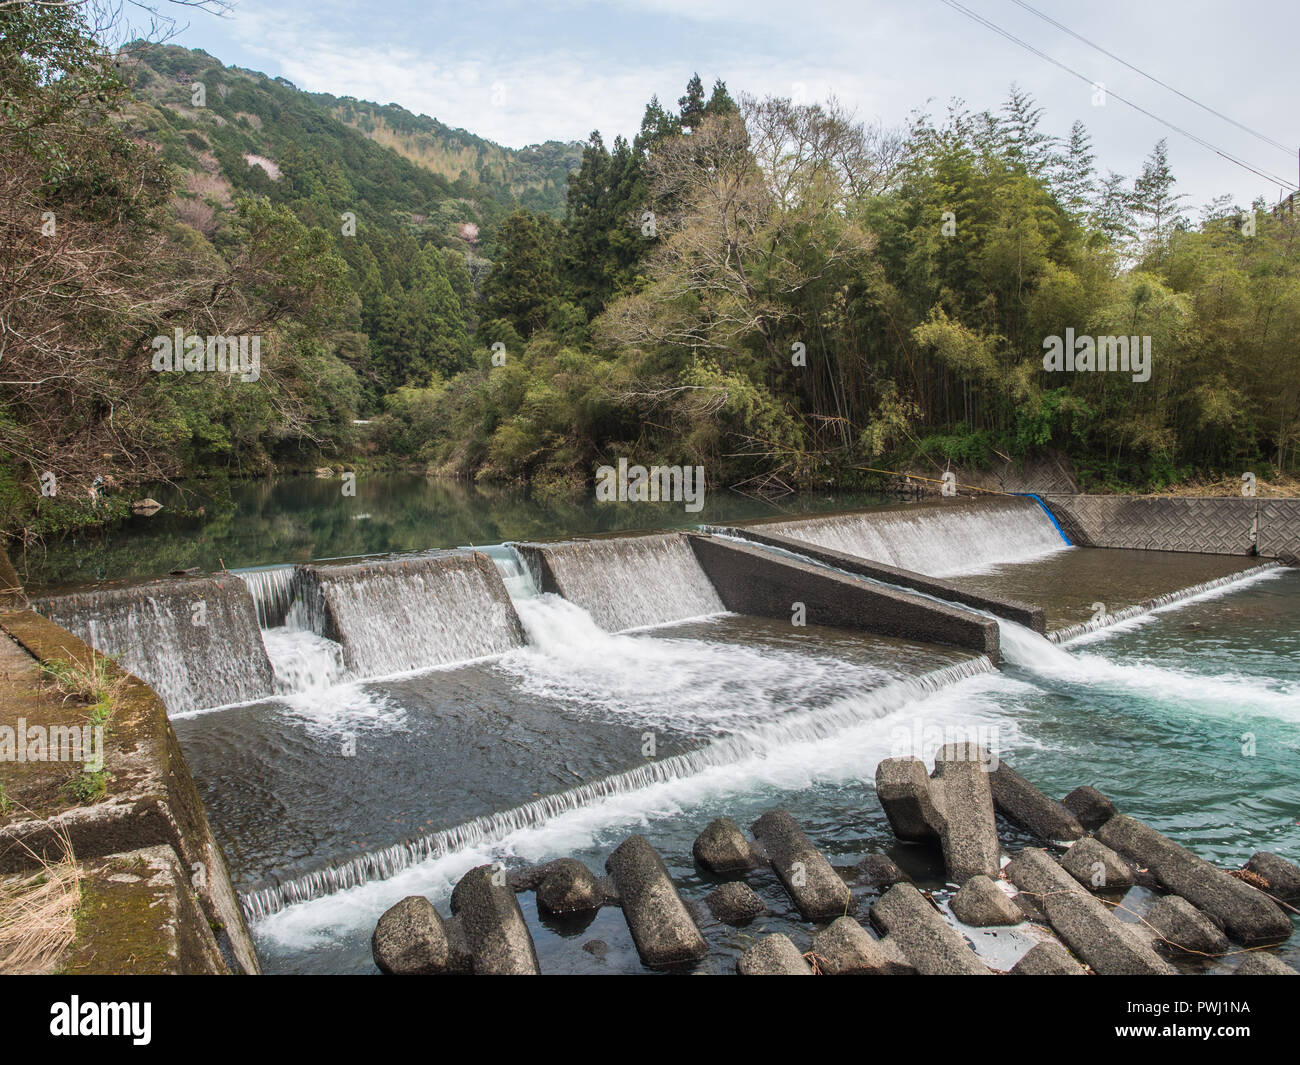 River management, a weir shaping river flow, with tetrapods below, Iyoki River, Koch, Shikoku, Japan - Stock Image